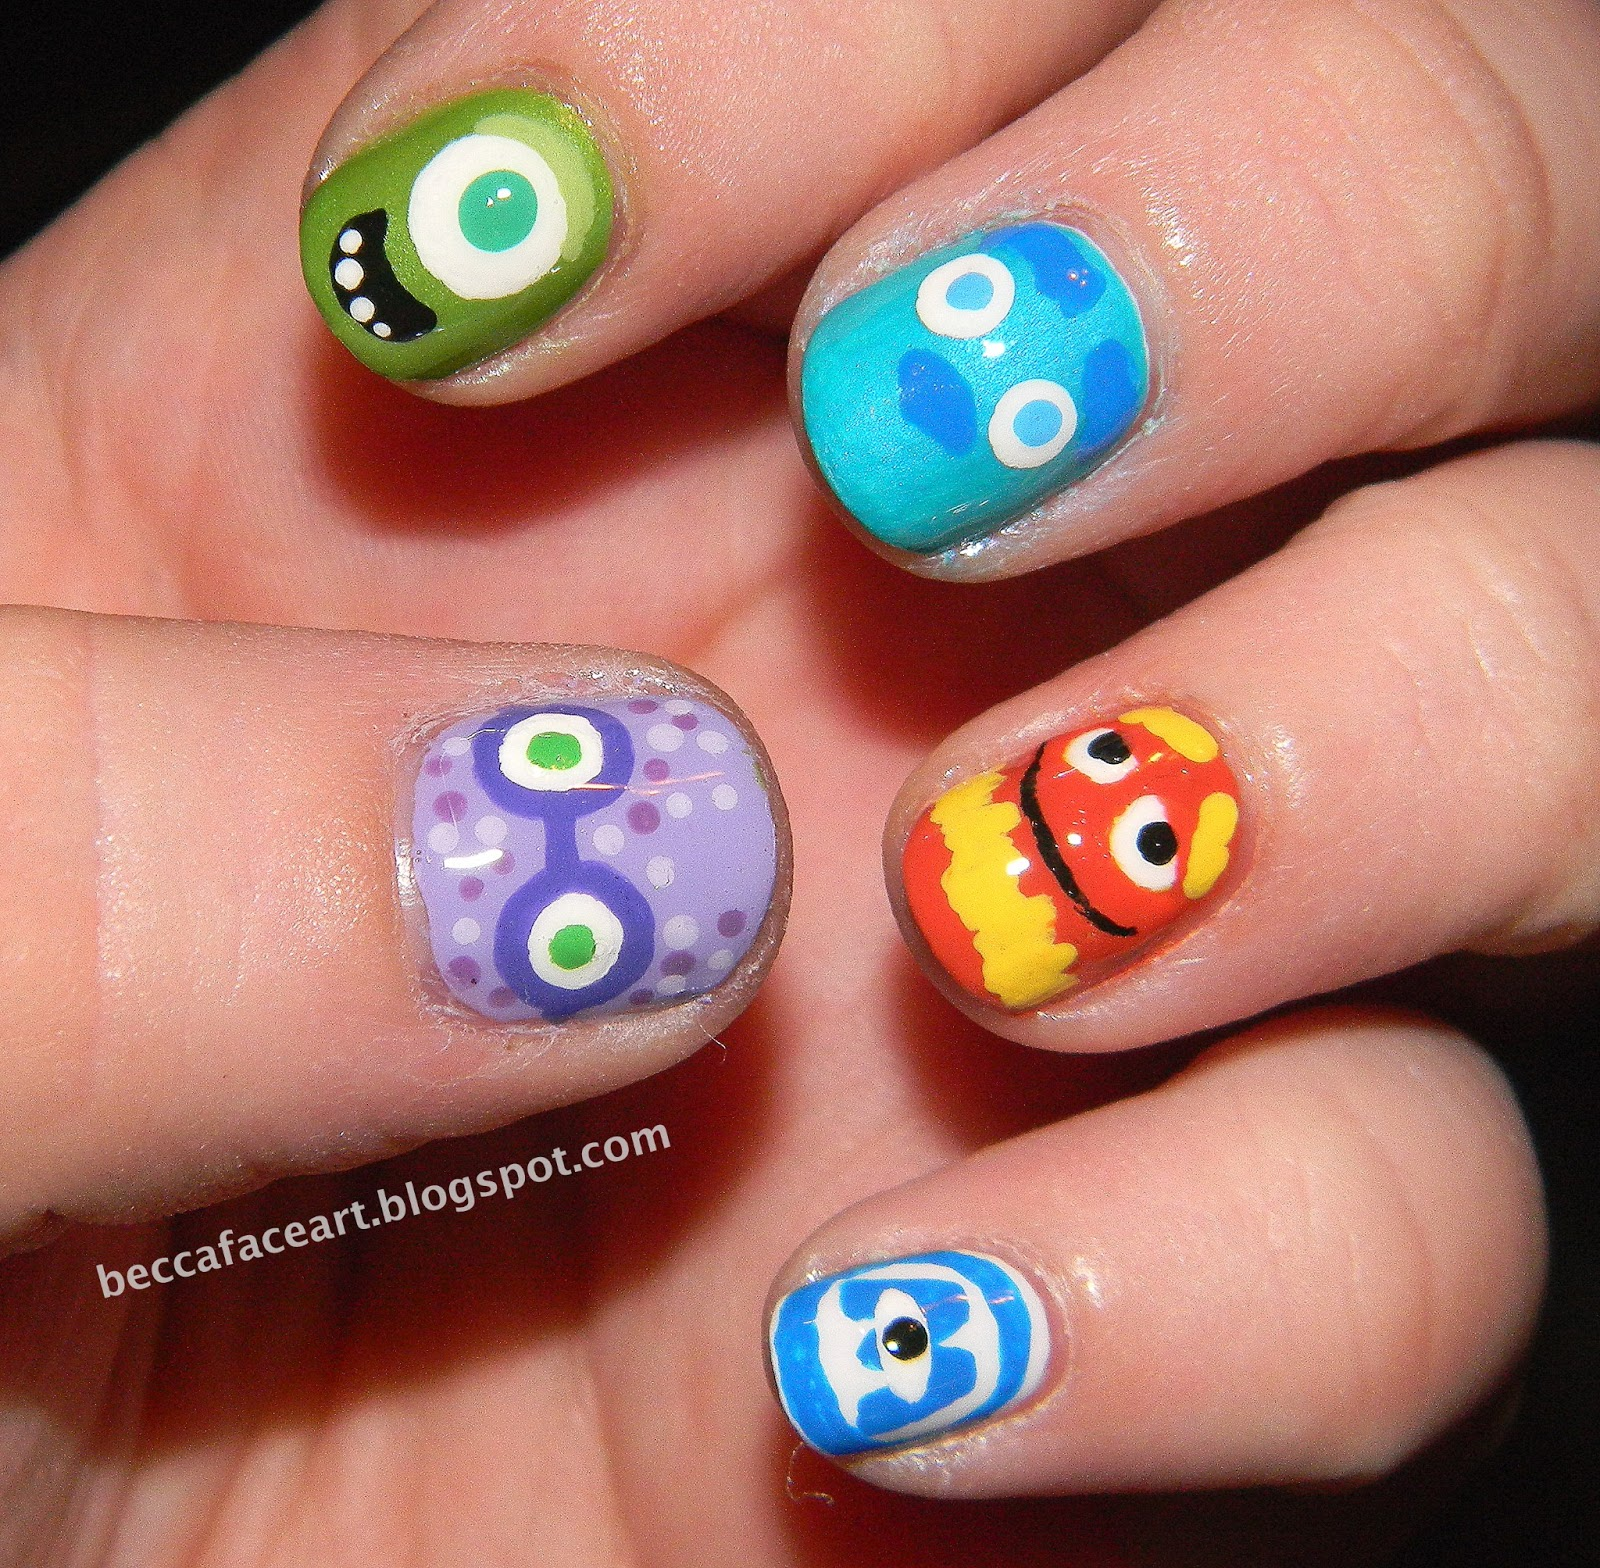 Becca Face Nail Art: Monsters University/Monsters, Inc. Nails!!